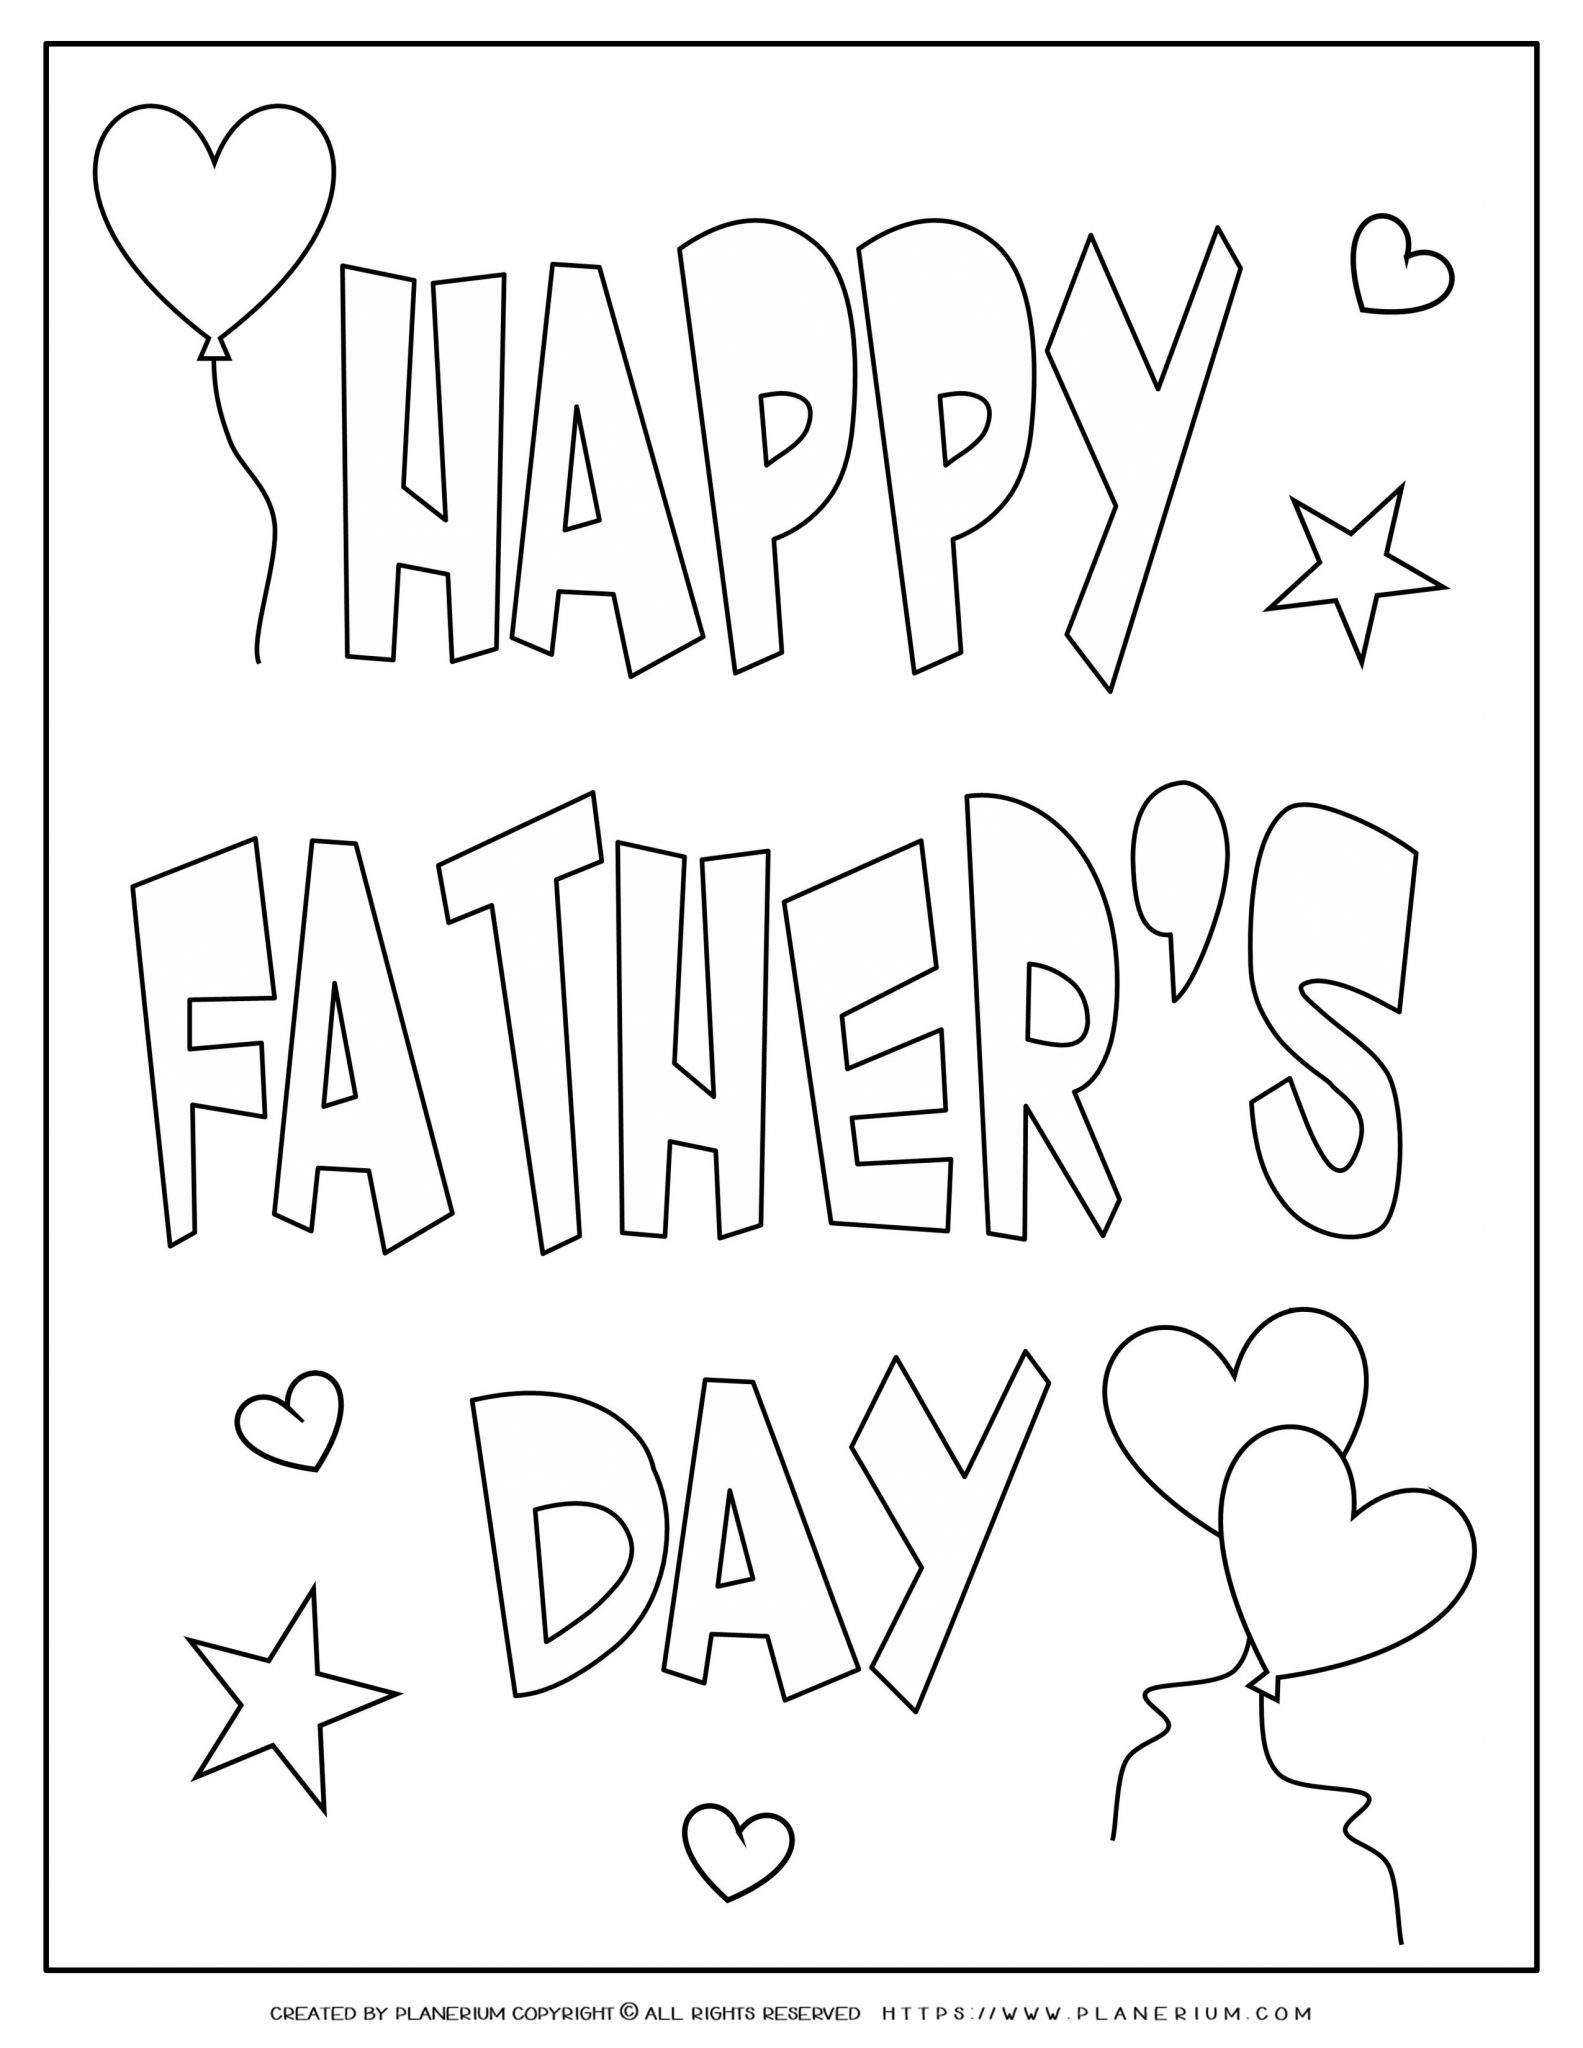 Father's Day - Coloring Page - Happy Father's Day